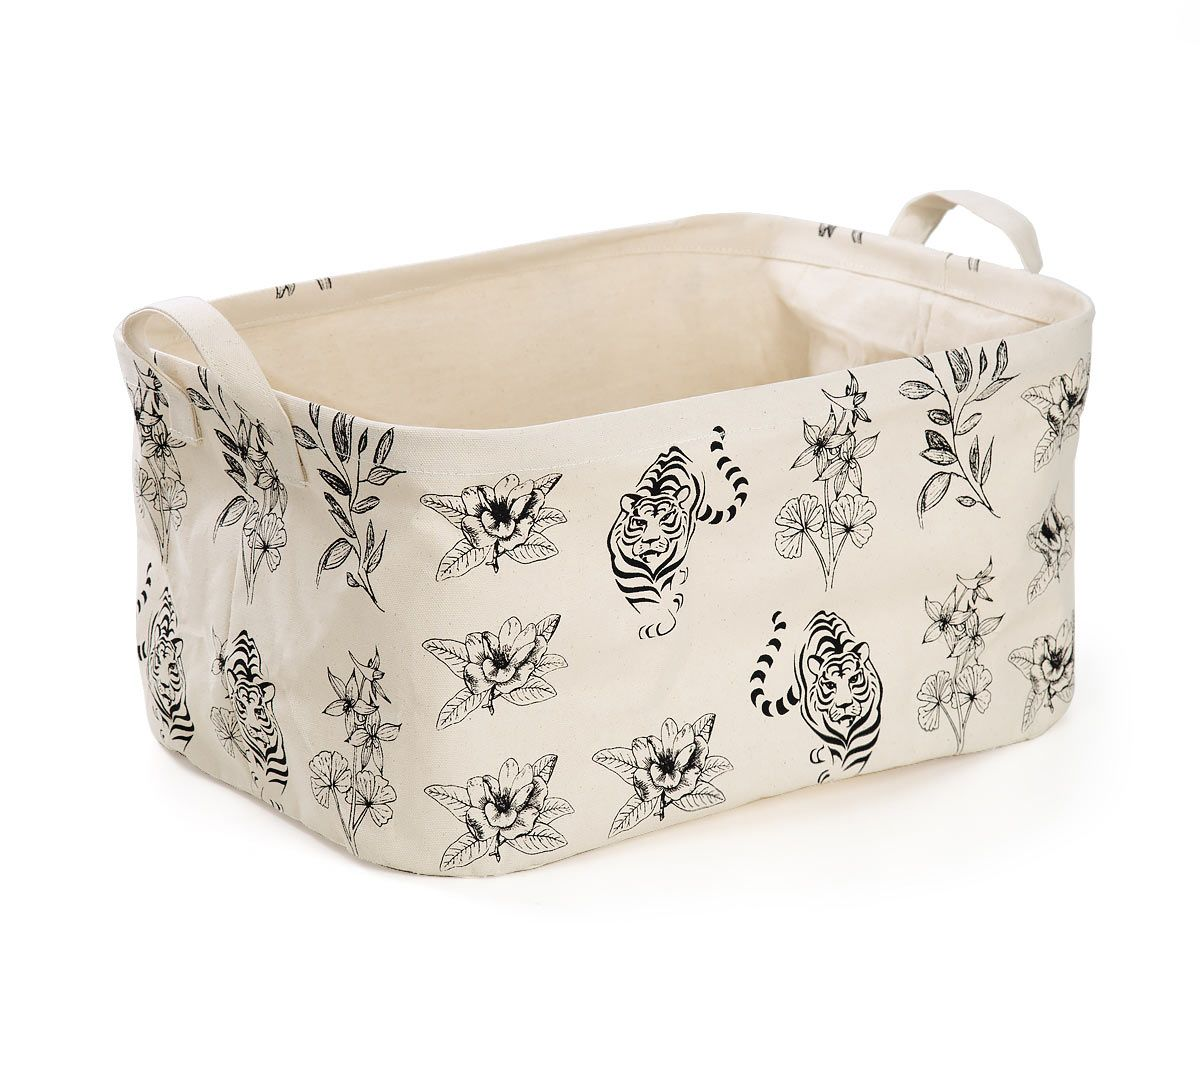 India Circus White Floral Sketch Rectangle Laundry Basket